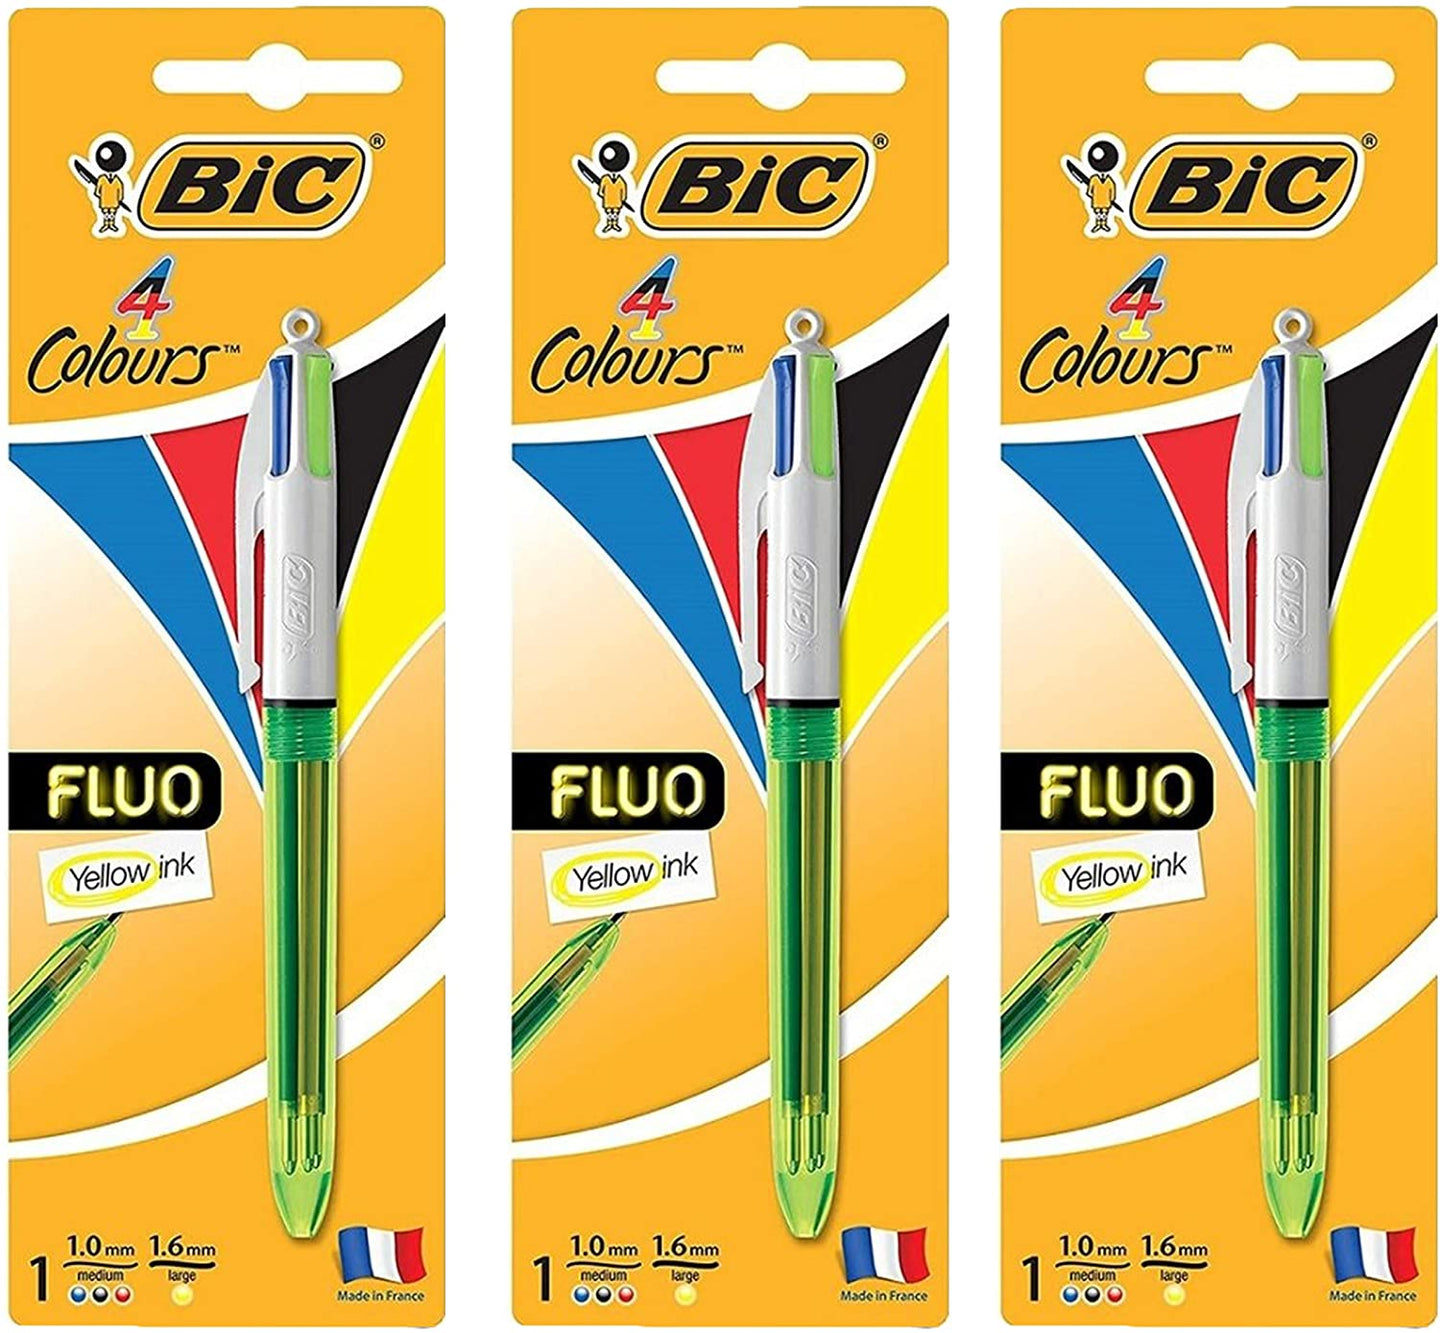 BIC 4 Colors Fluorescent Ink Ball Point Pen, Multicolor Pen Perfect for School Crafts Activities and Office (Pack of 3)